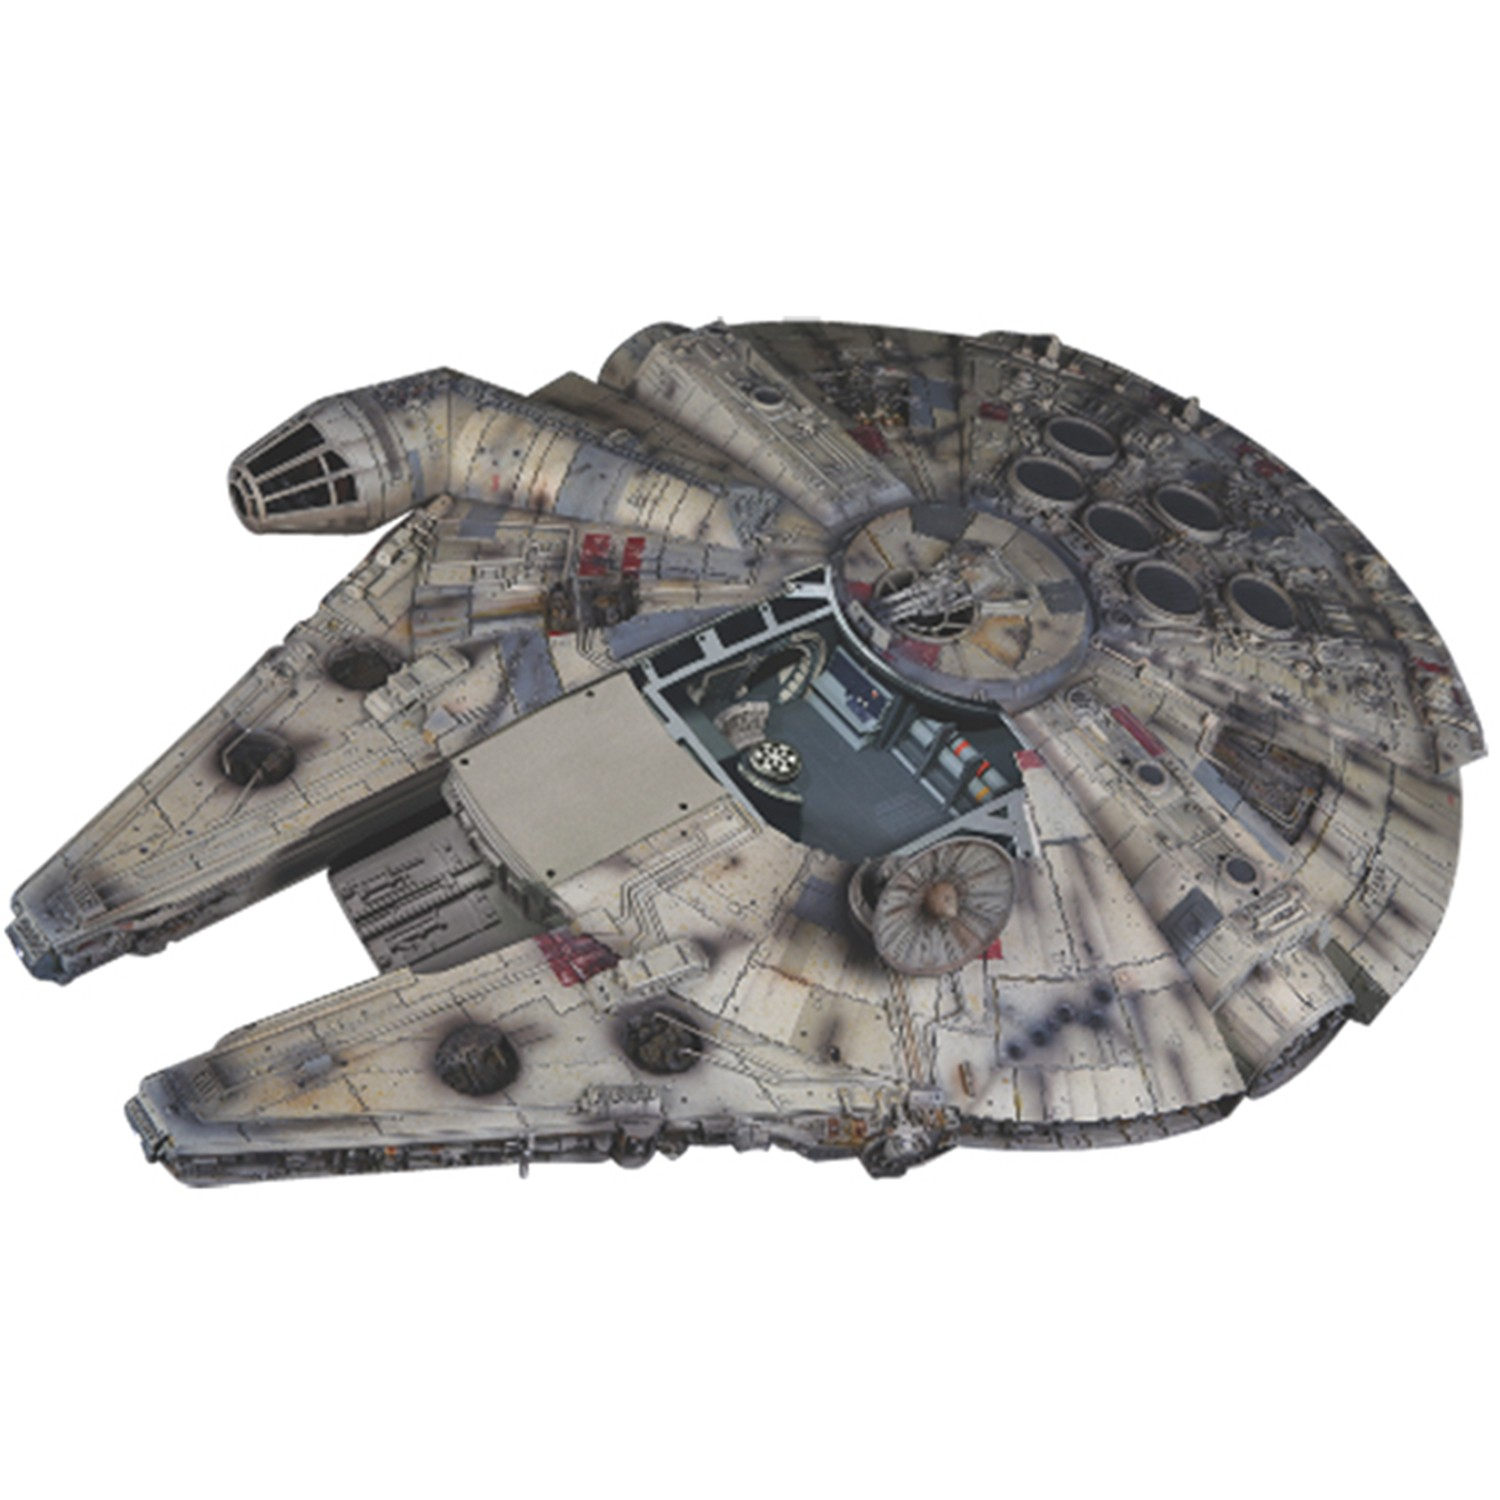 rc toy planes with Build Millennium Falcon on Watch together with Rc Radio Remote Control Yama 15 Scale Petrol Rc Buggy 24ghz Pro 30cc Carbon Version 23554 P additionally 164025721 likewise P214189 besides Build Millennium Falcon.